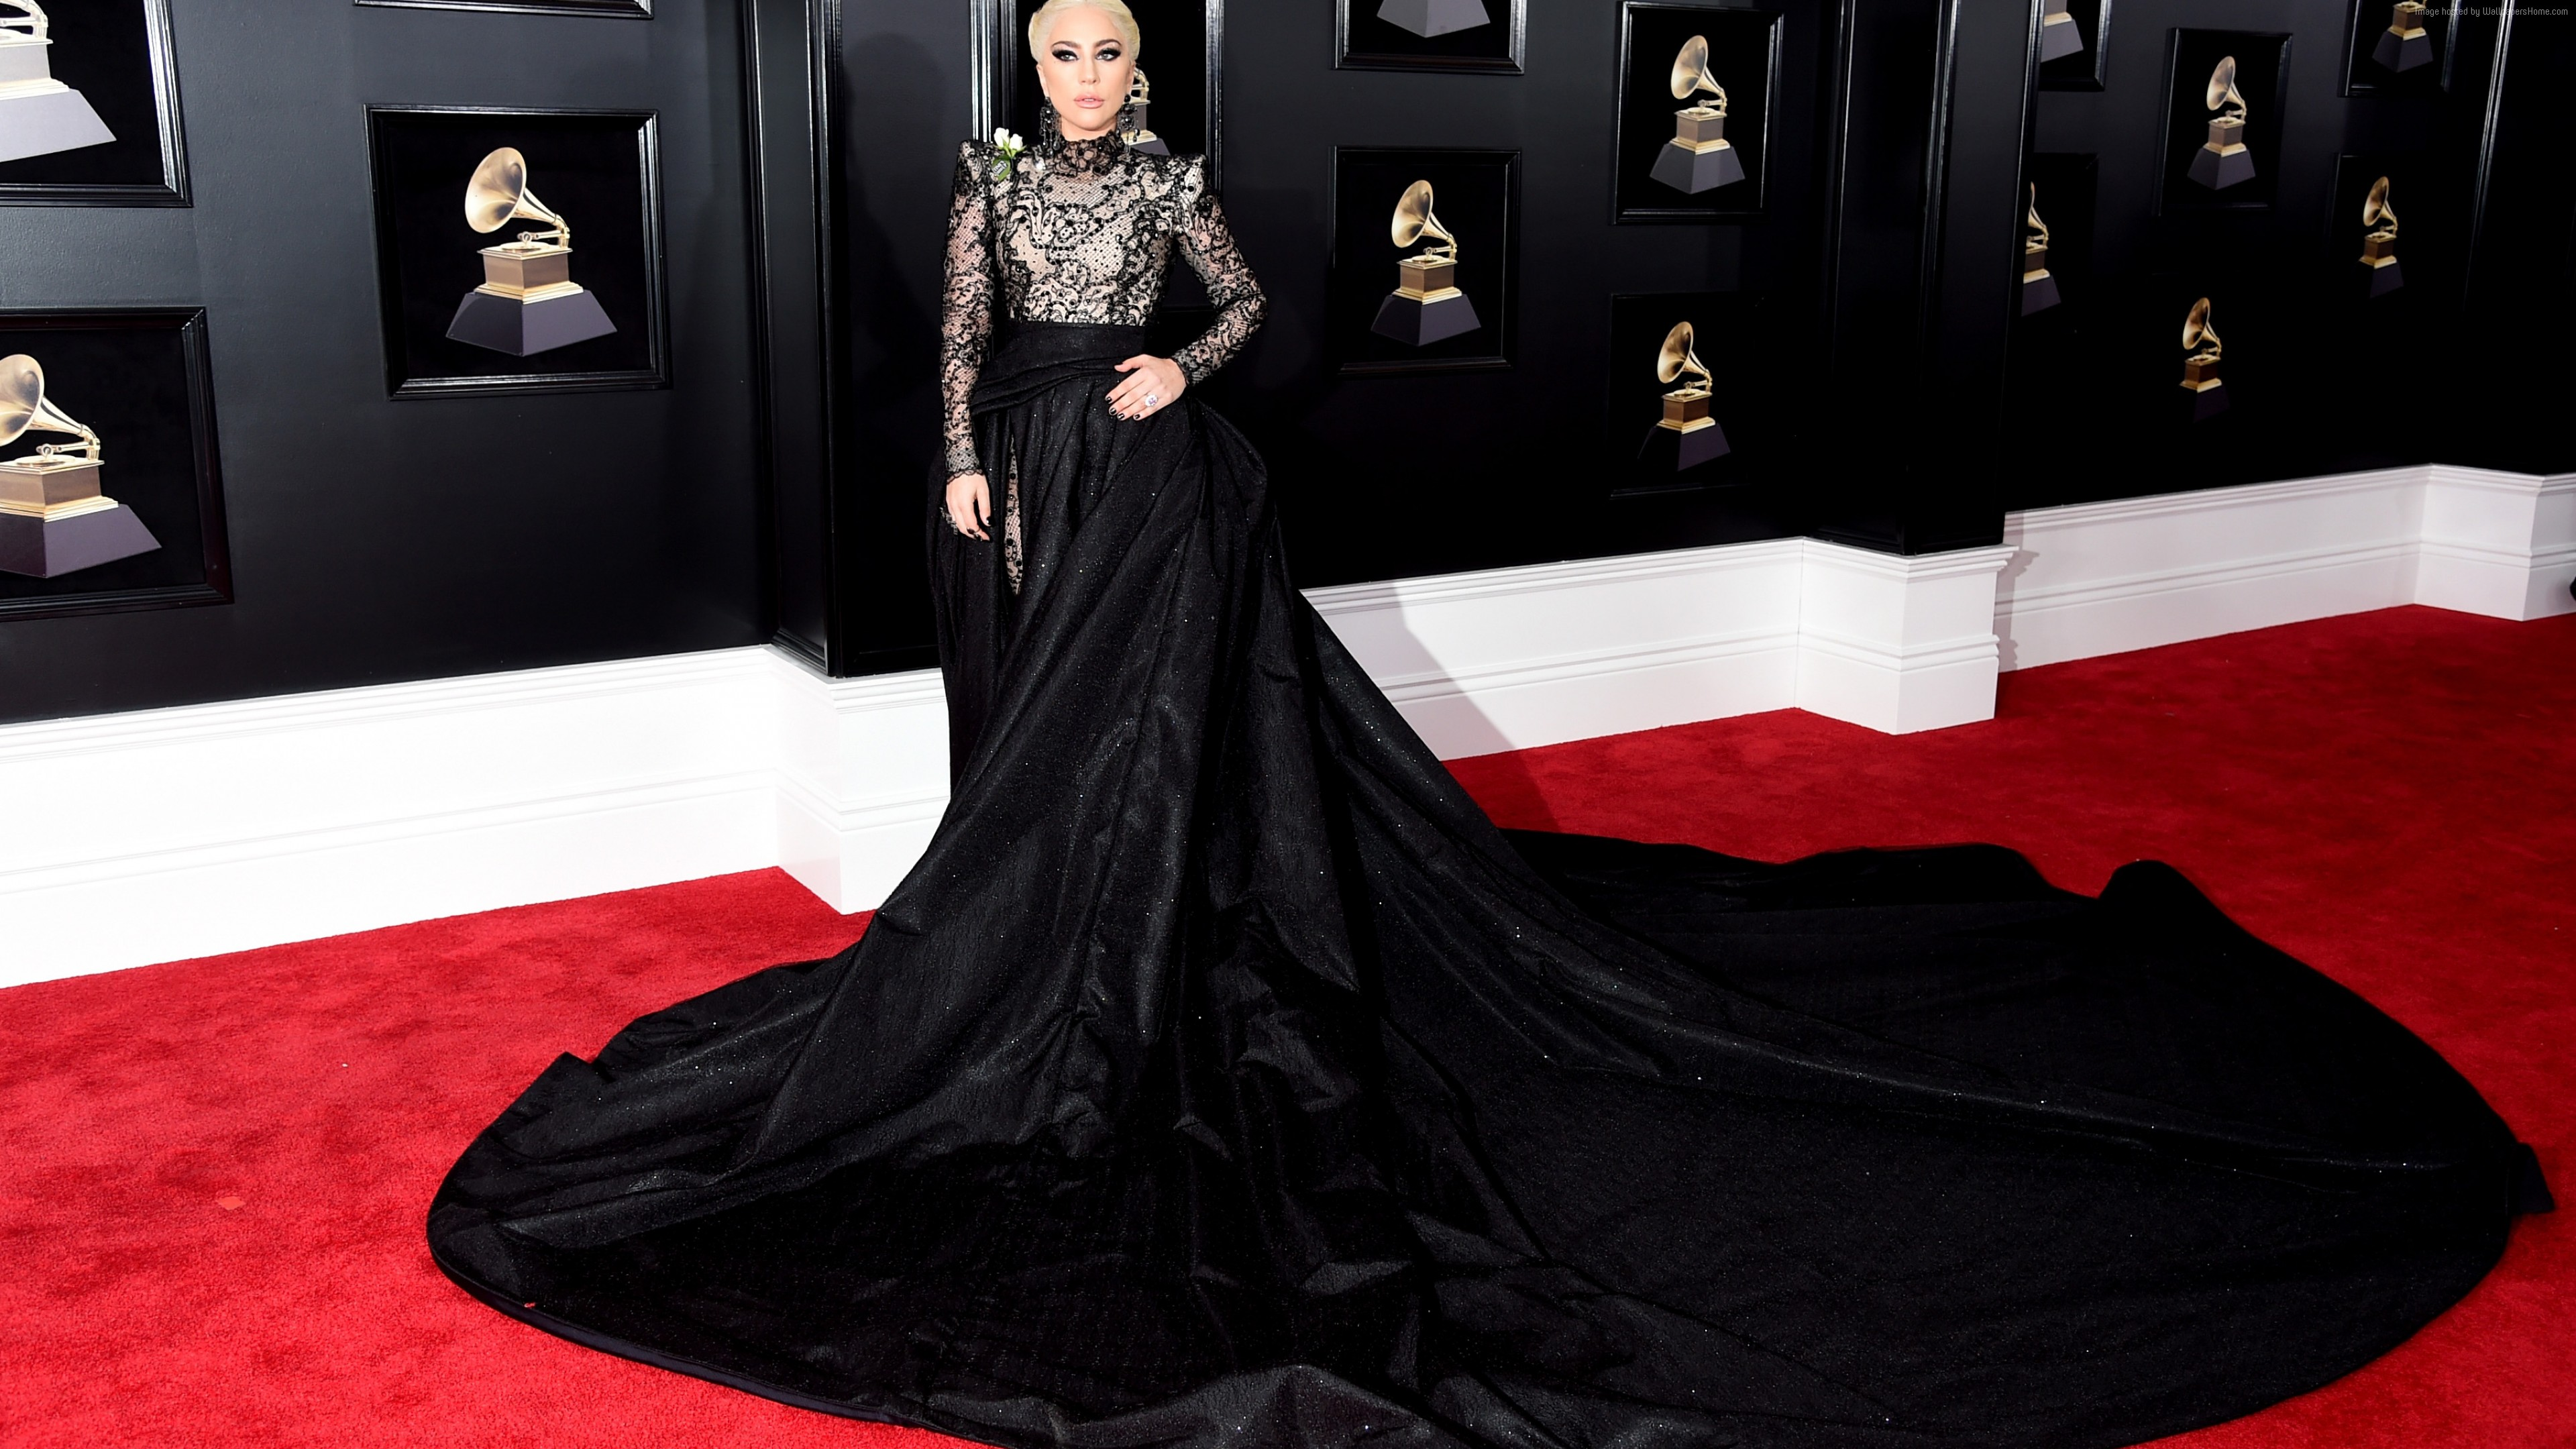 Wallpaper Lady Gaga, dress, Grammy 2018, 4k, Celebrities